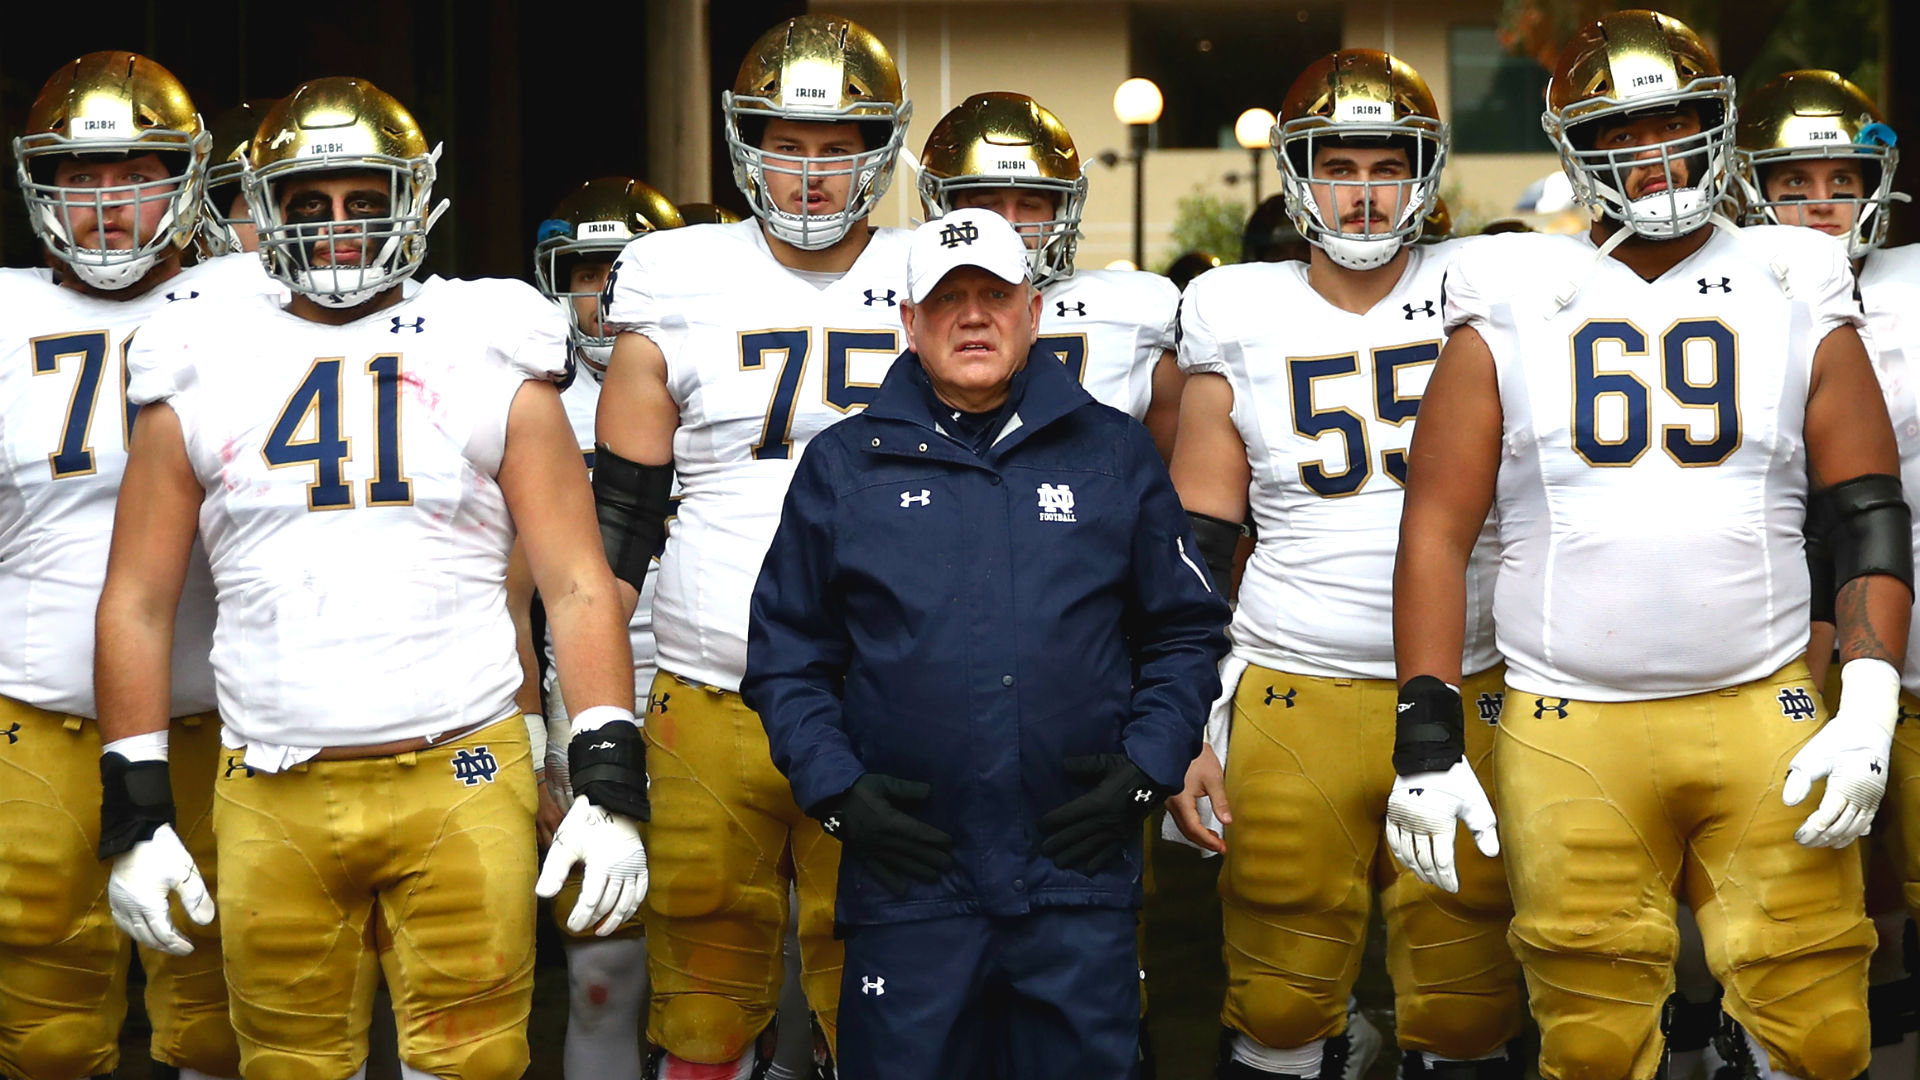 notre dame football schedule - photo #5